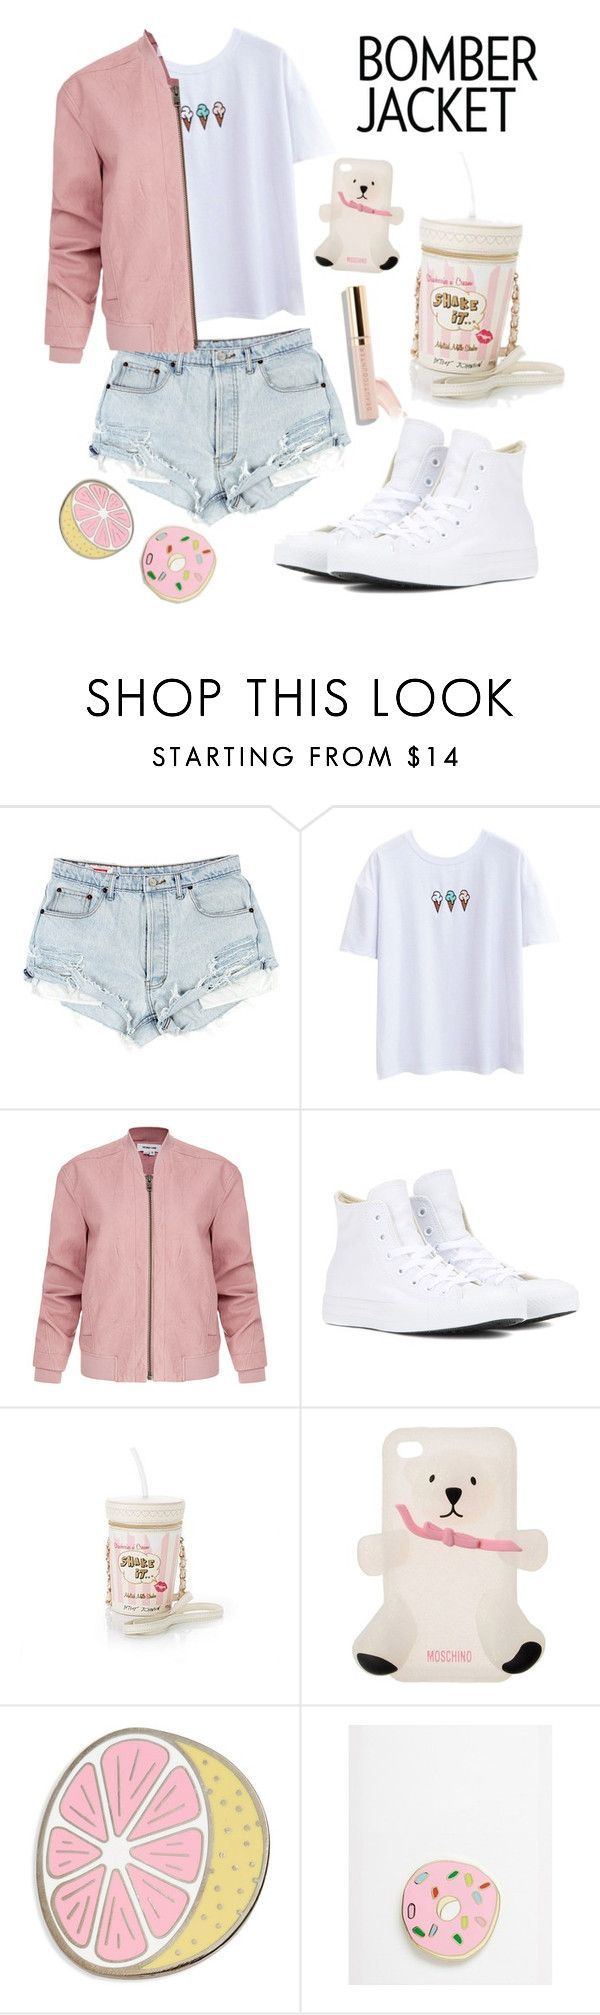 """Untitled #135"" by mydntkrl ❤ liked on Polyvore featuring Helmut Lang, Converse, Betsey Johnson, Moschino, Big Bud Press, Jolly Awesome and bomberjackets"